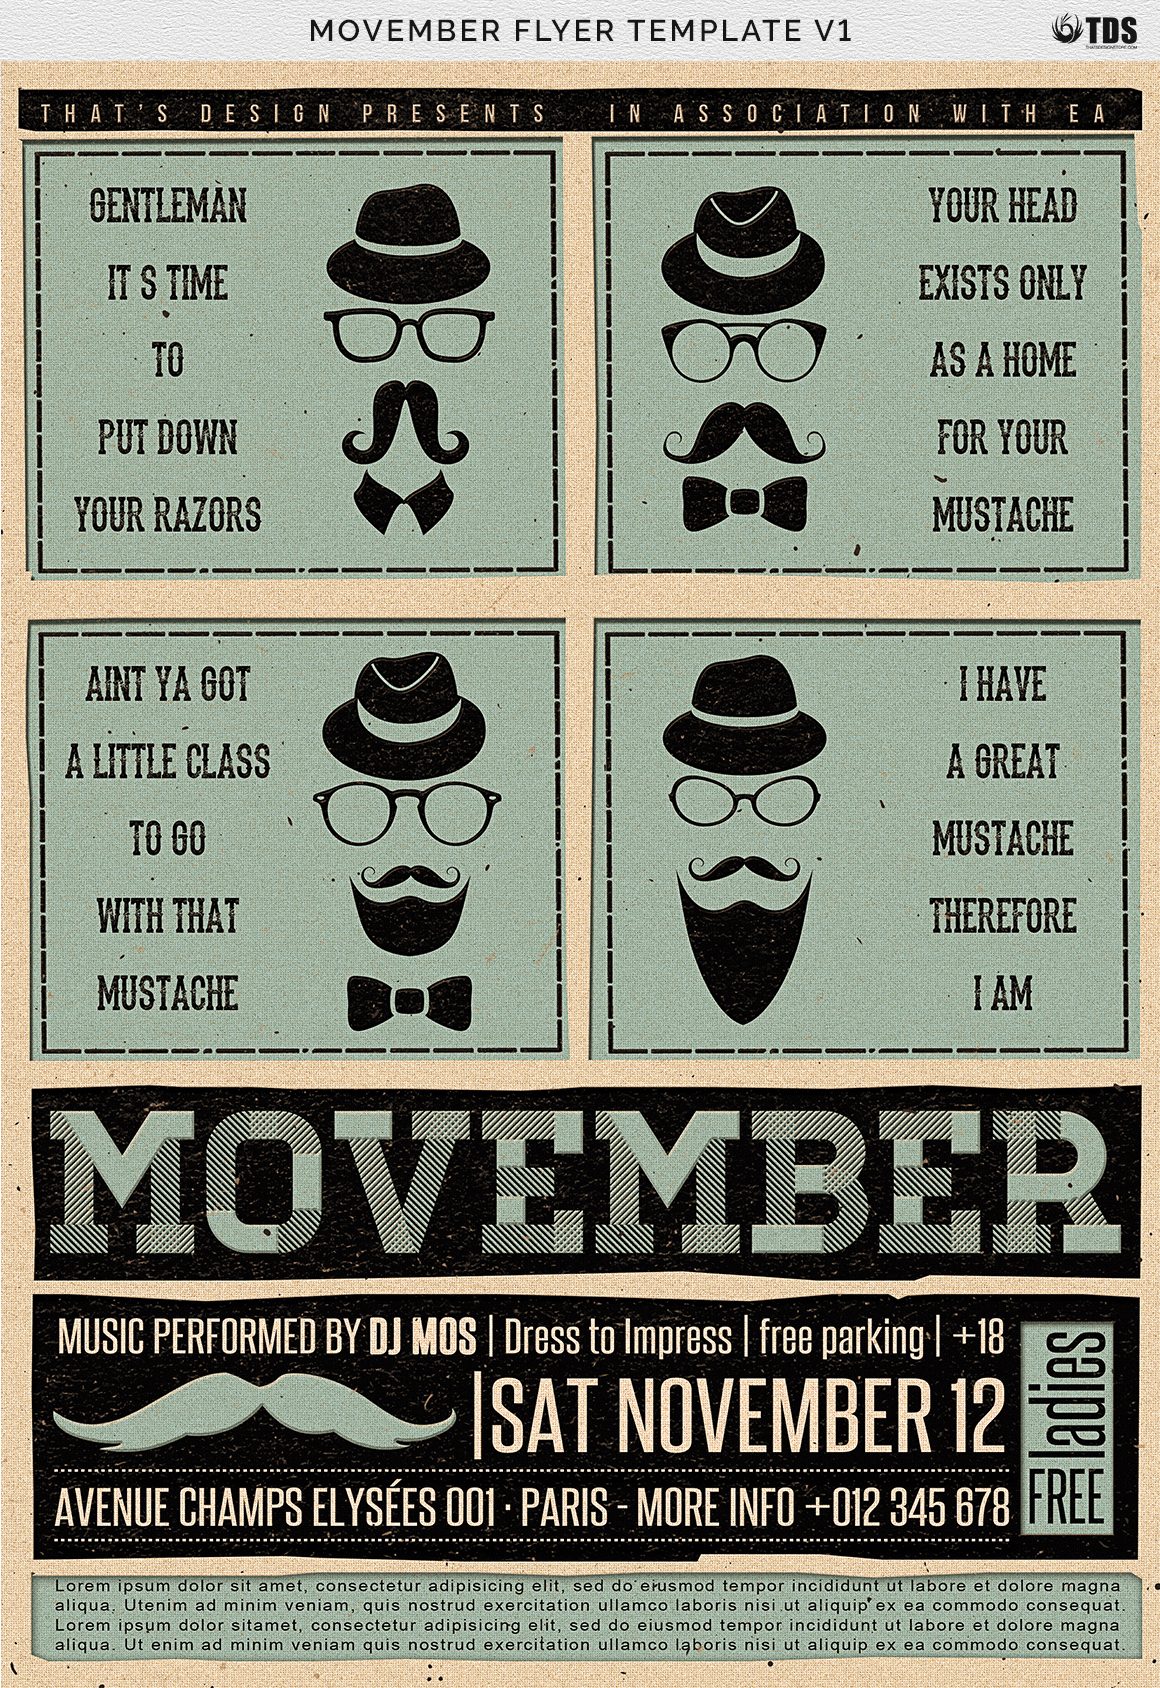 Movember Flyer Template V1 example image 3